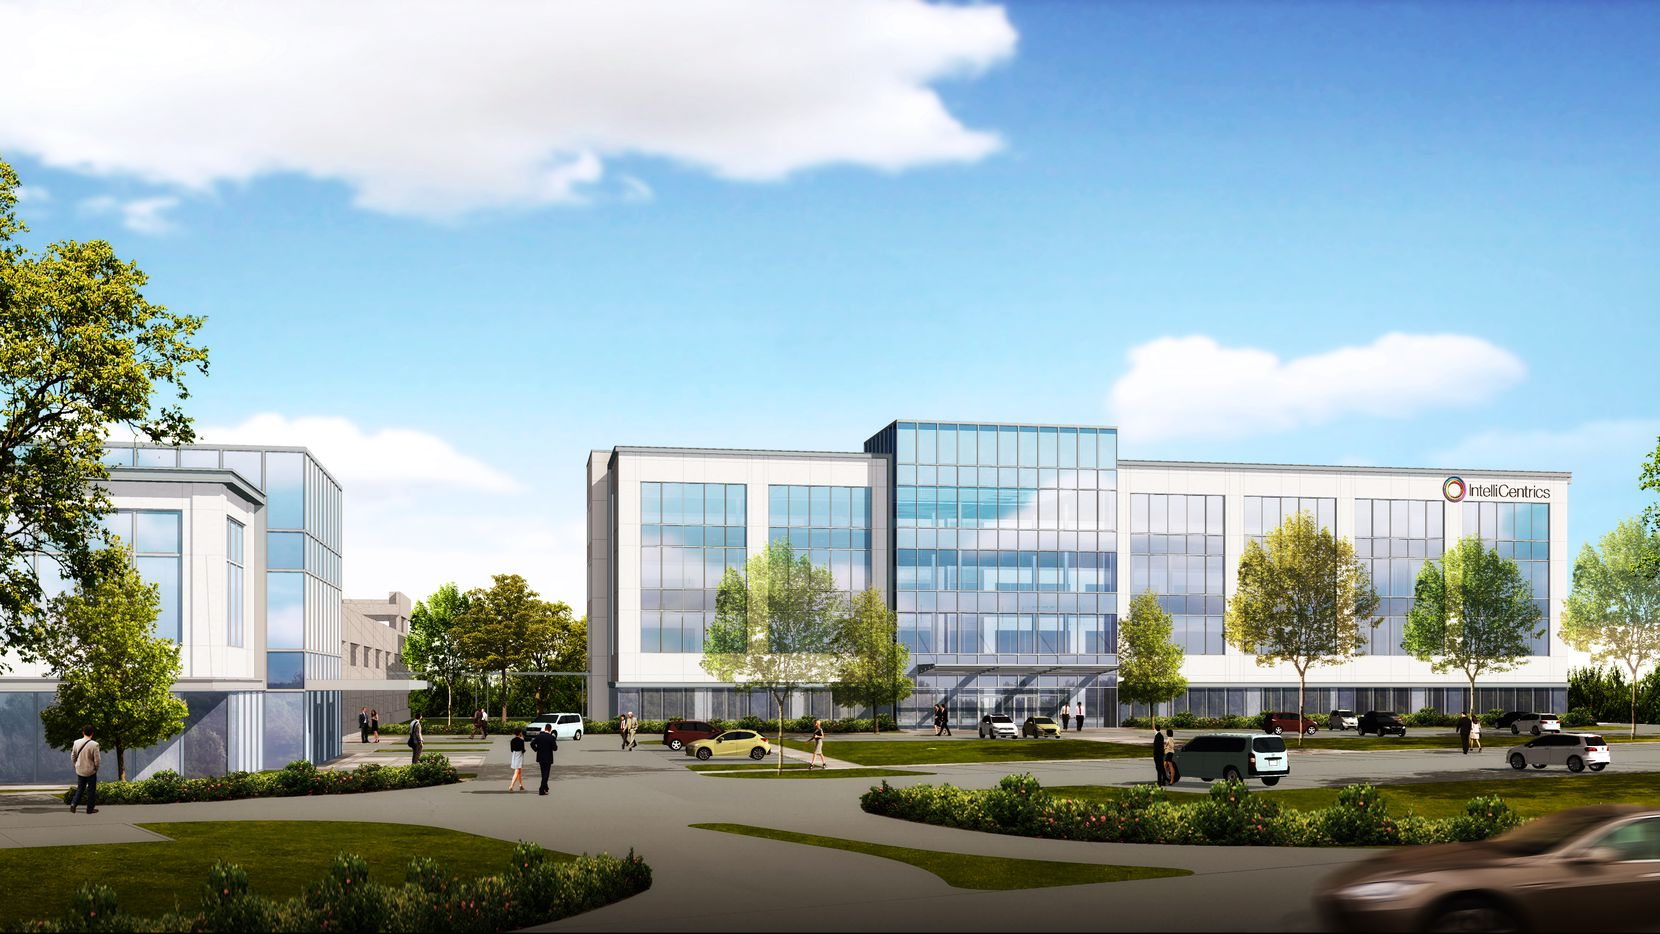 IntelliCentrics is the lead tenant in the new Flower Mound office park.